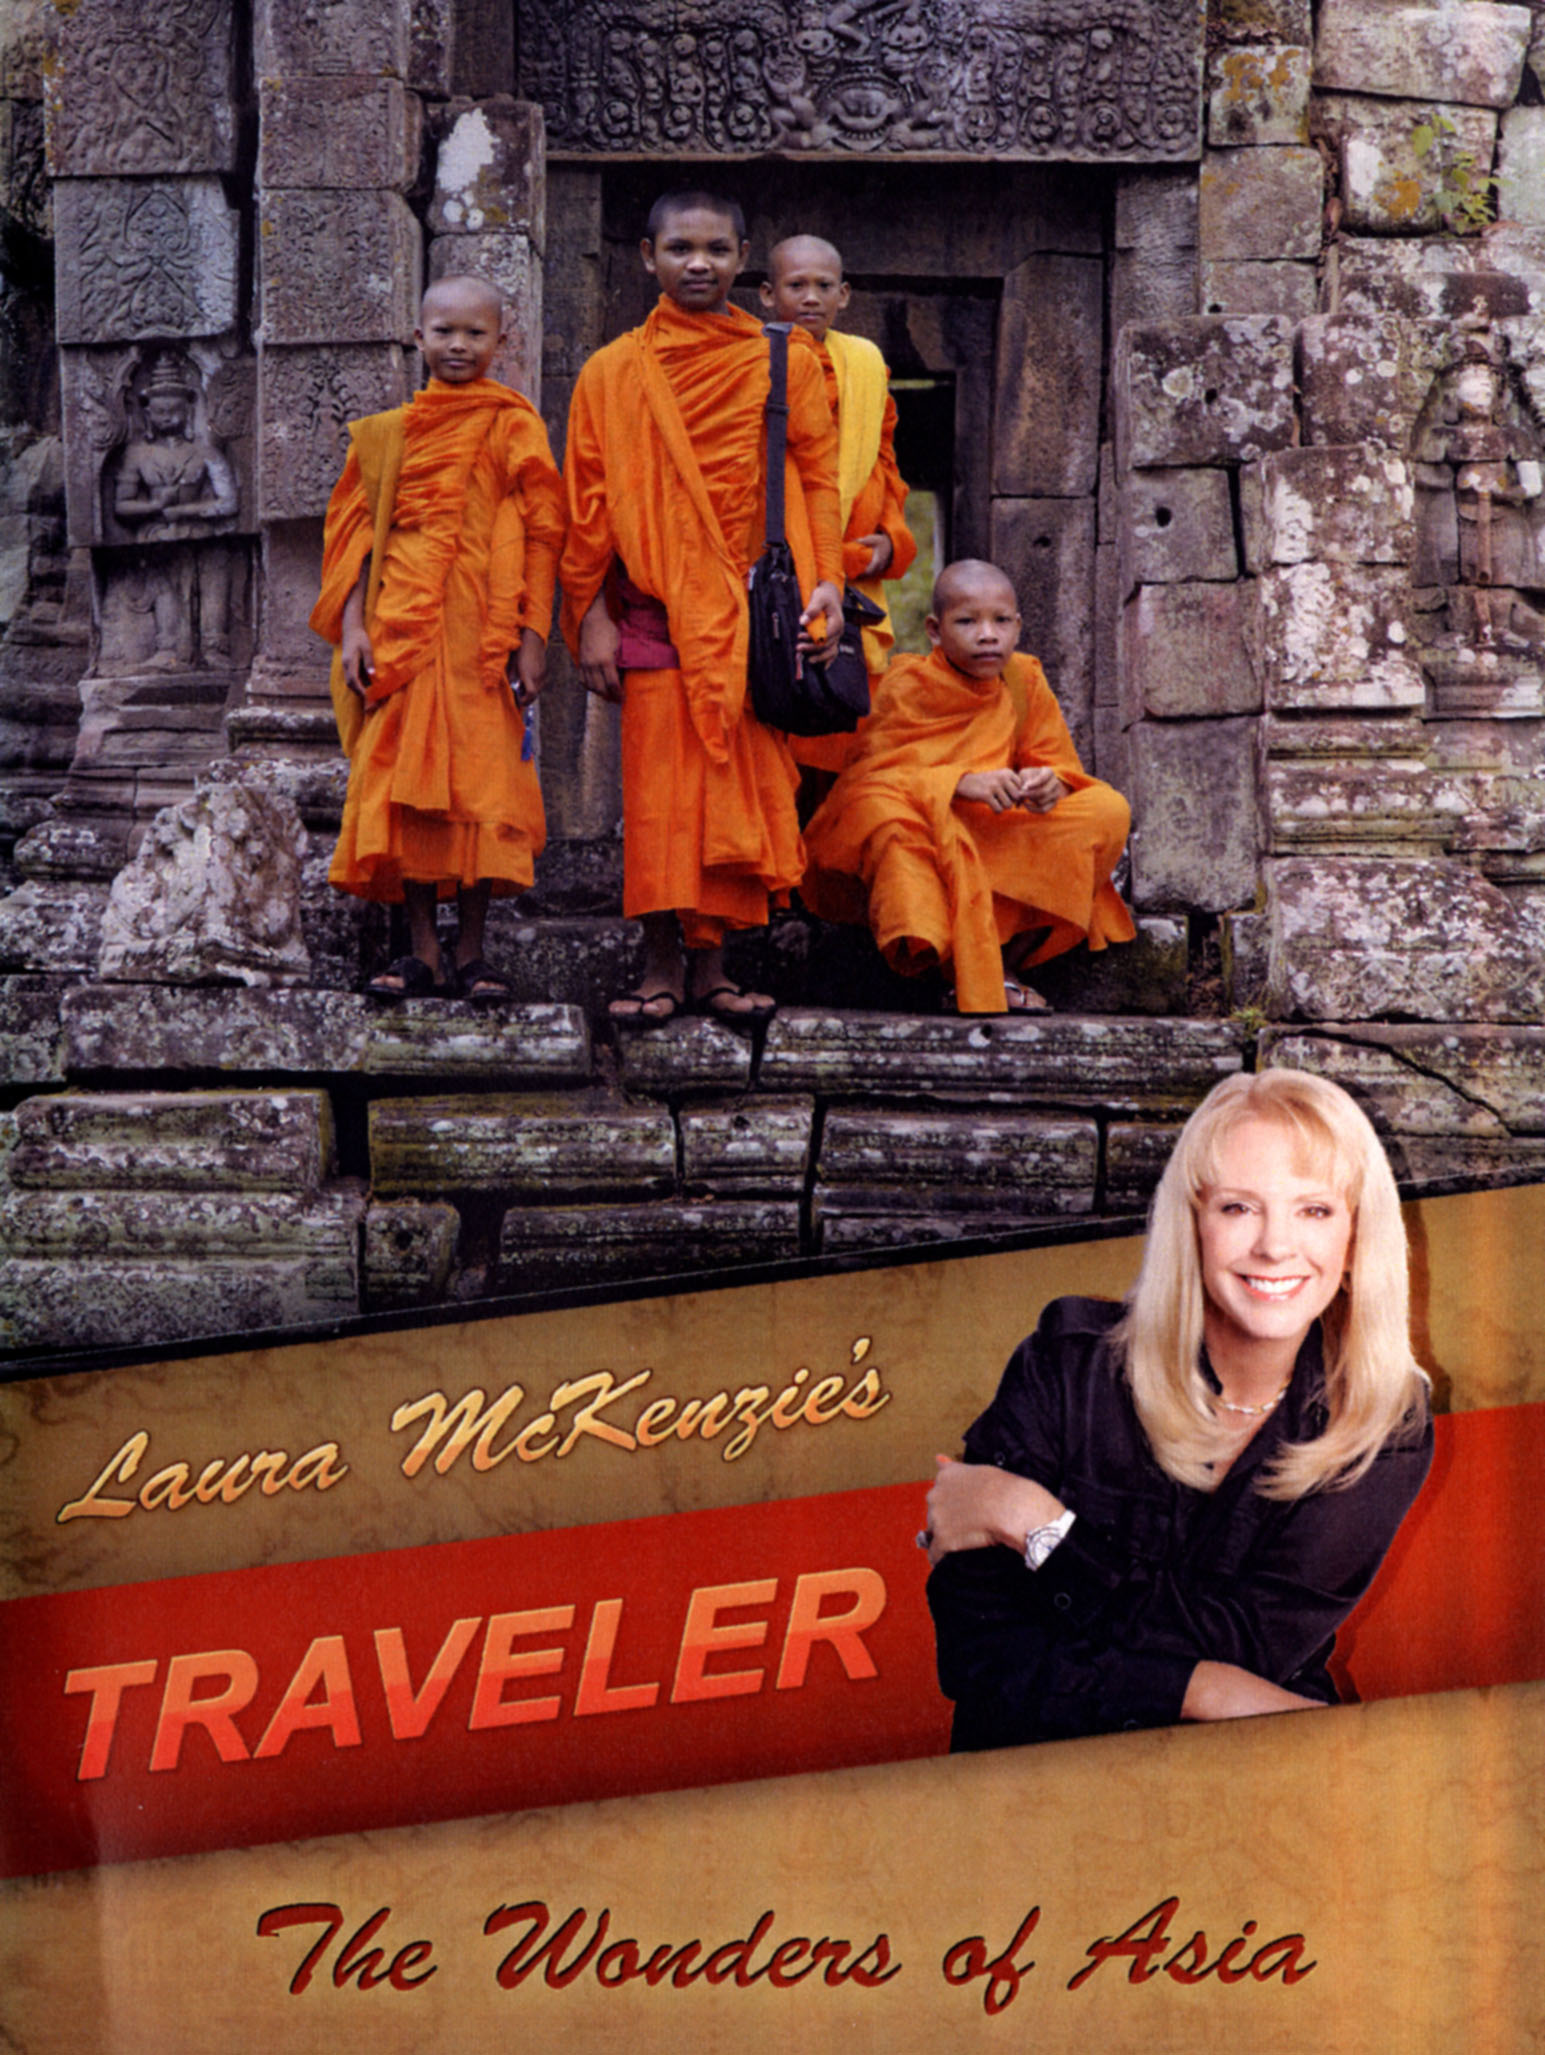 Laura McKenzie's Traveler: The Wonders of Asia